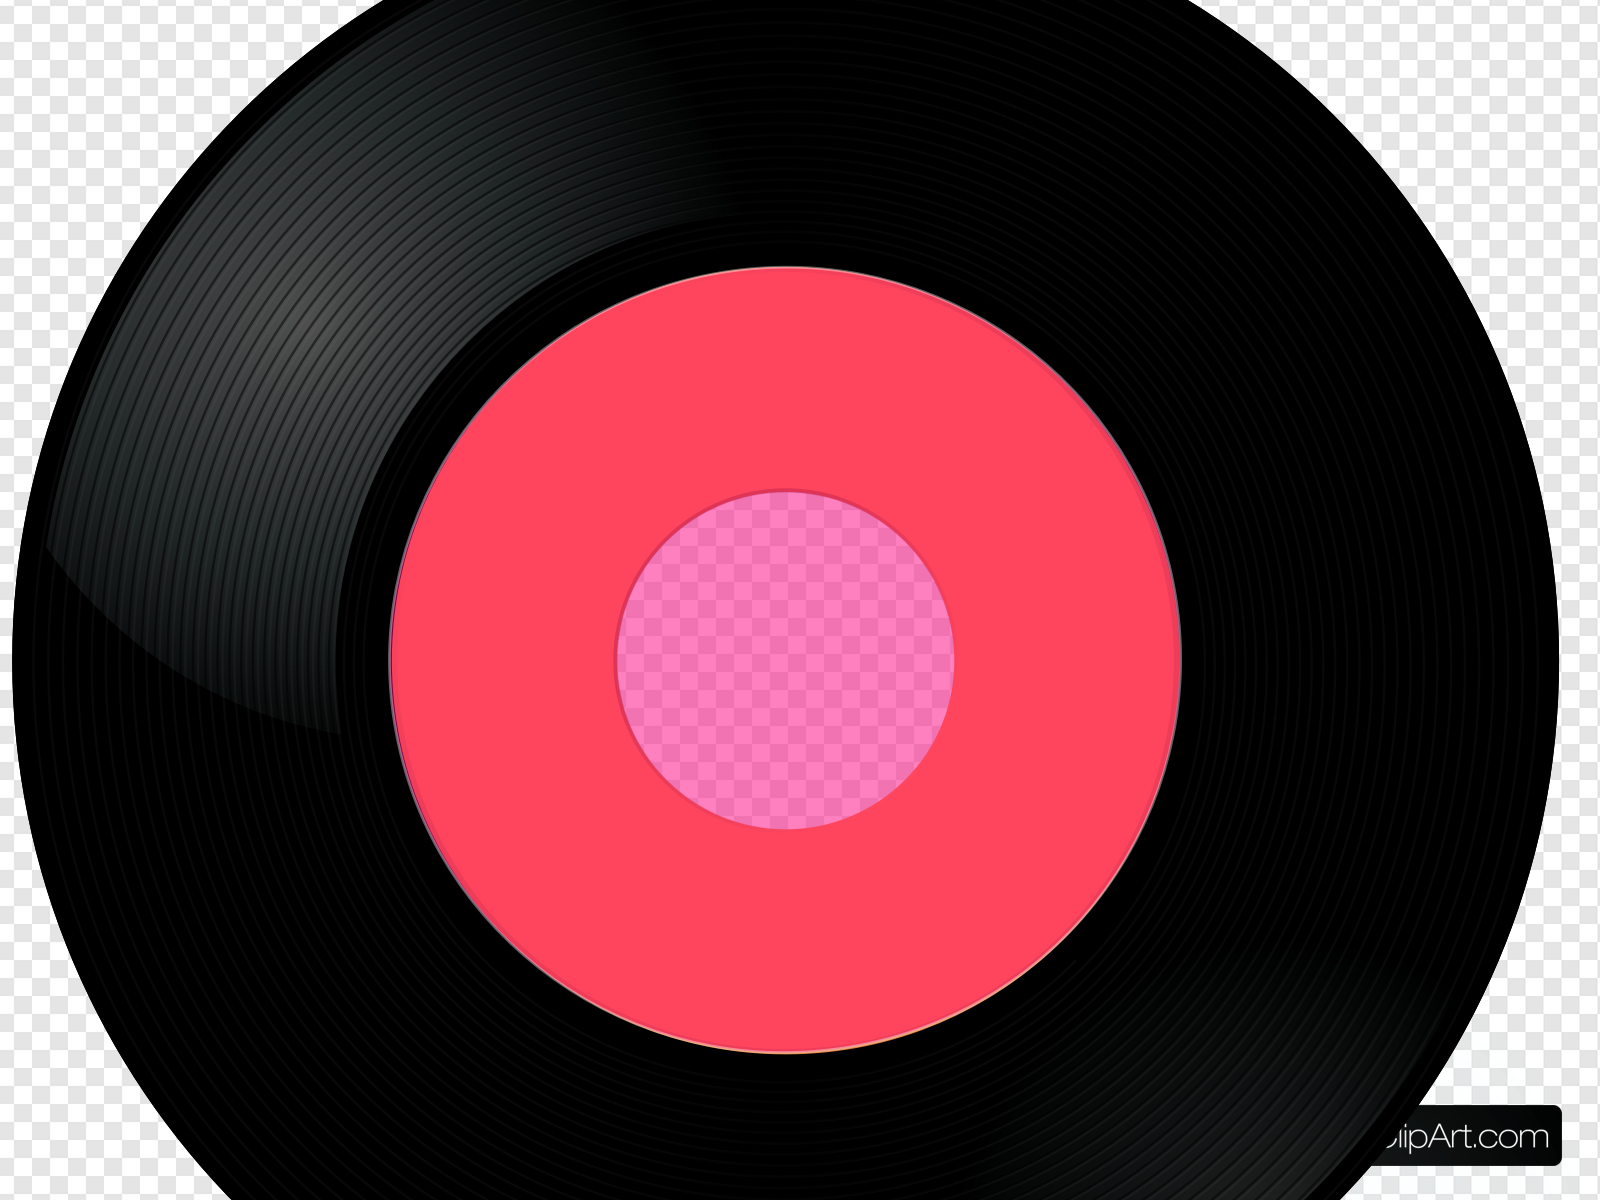 Clip art icon and. Record clipart pink